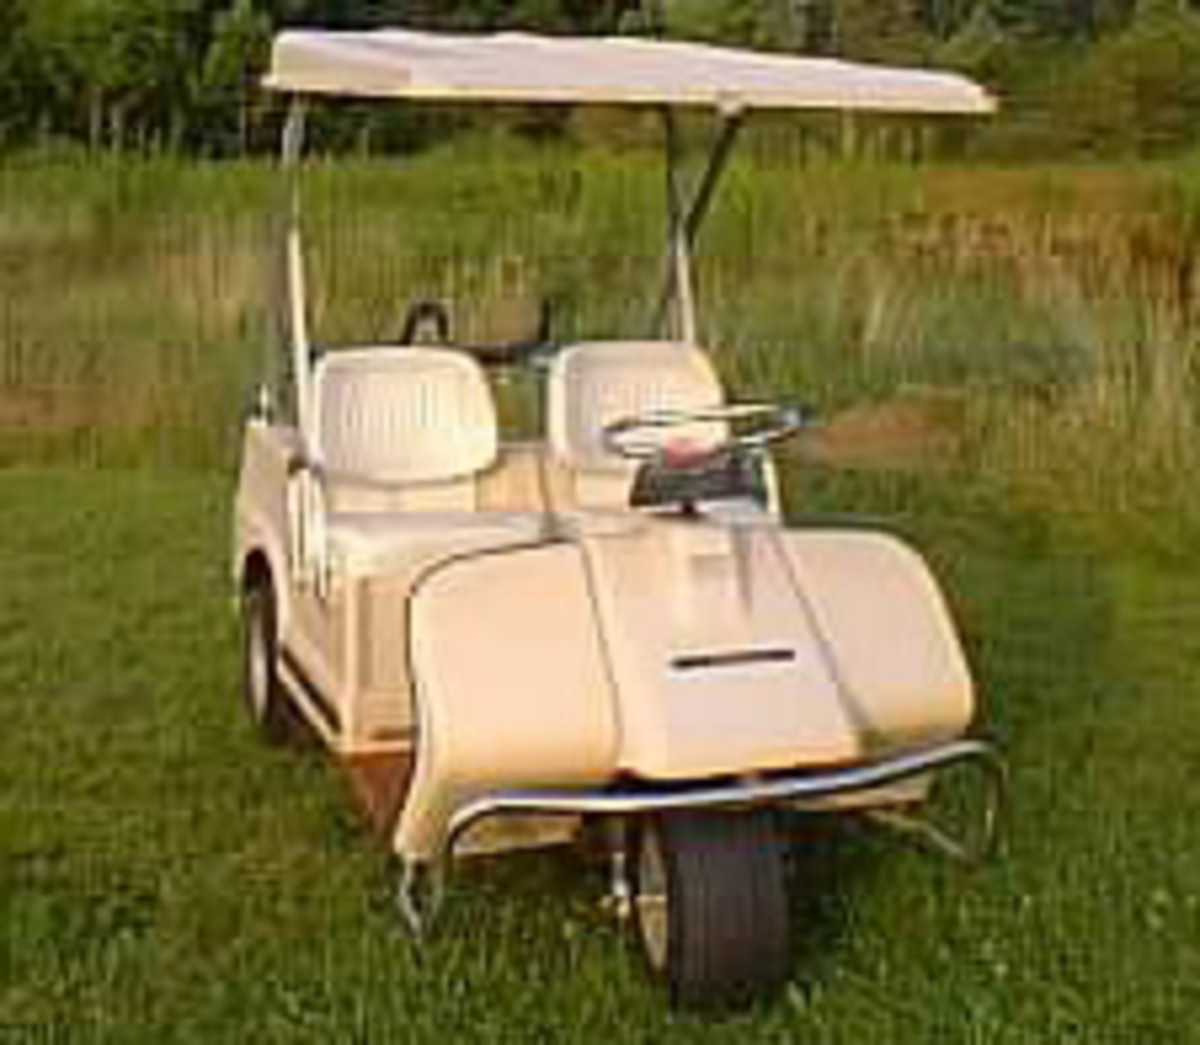 Harley-Davidson Golf Carts